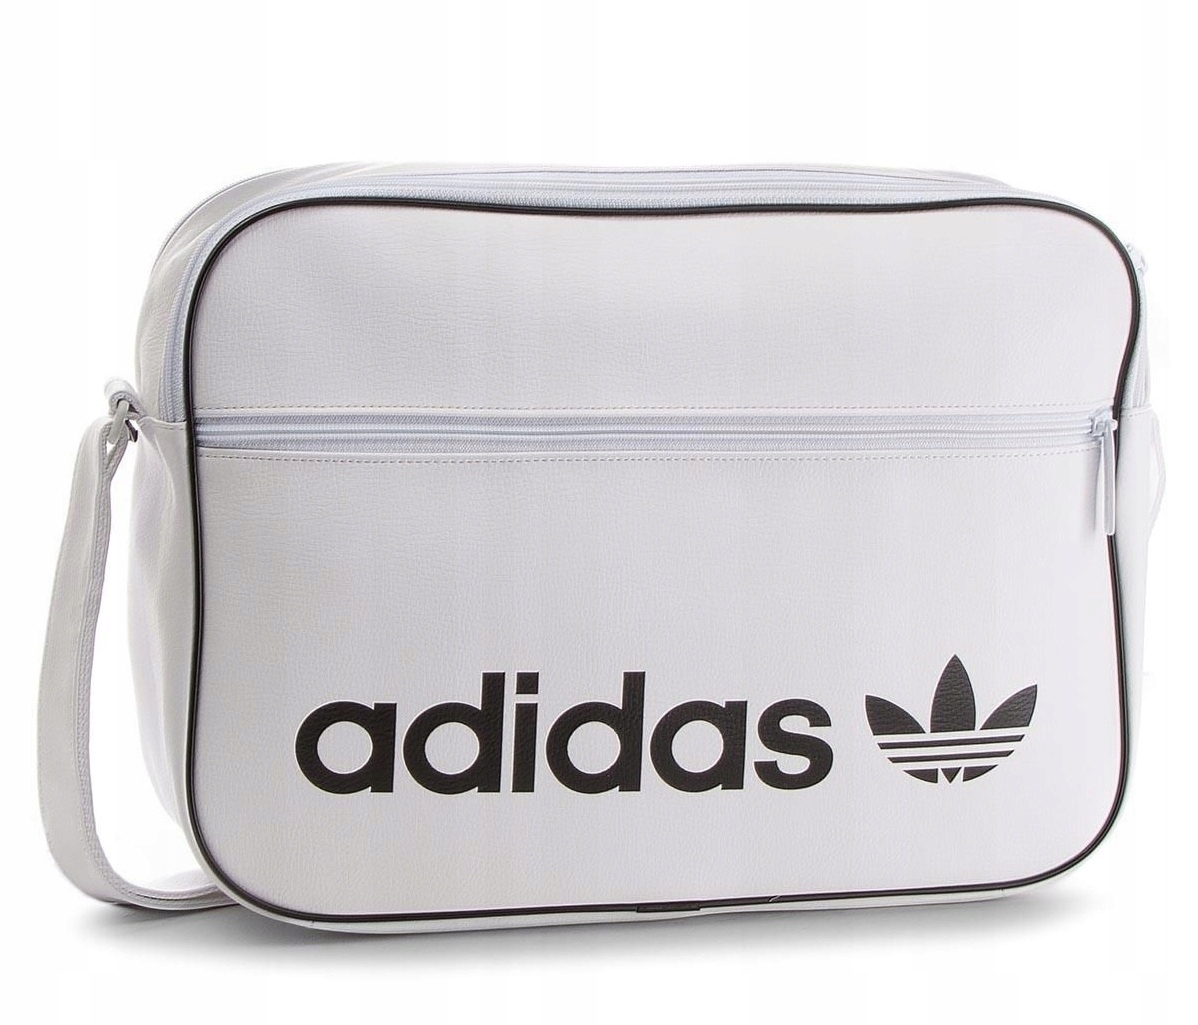 a2a0cdeb2dce0 TORBA SPORTOWA ADIDAS AIRLINER VINTAGE DH1003 - 7534001817 ...